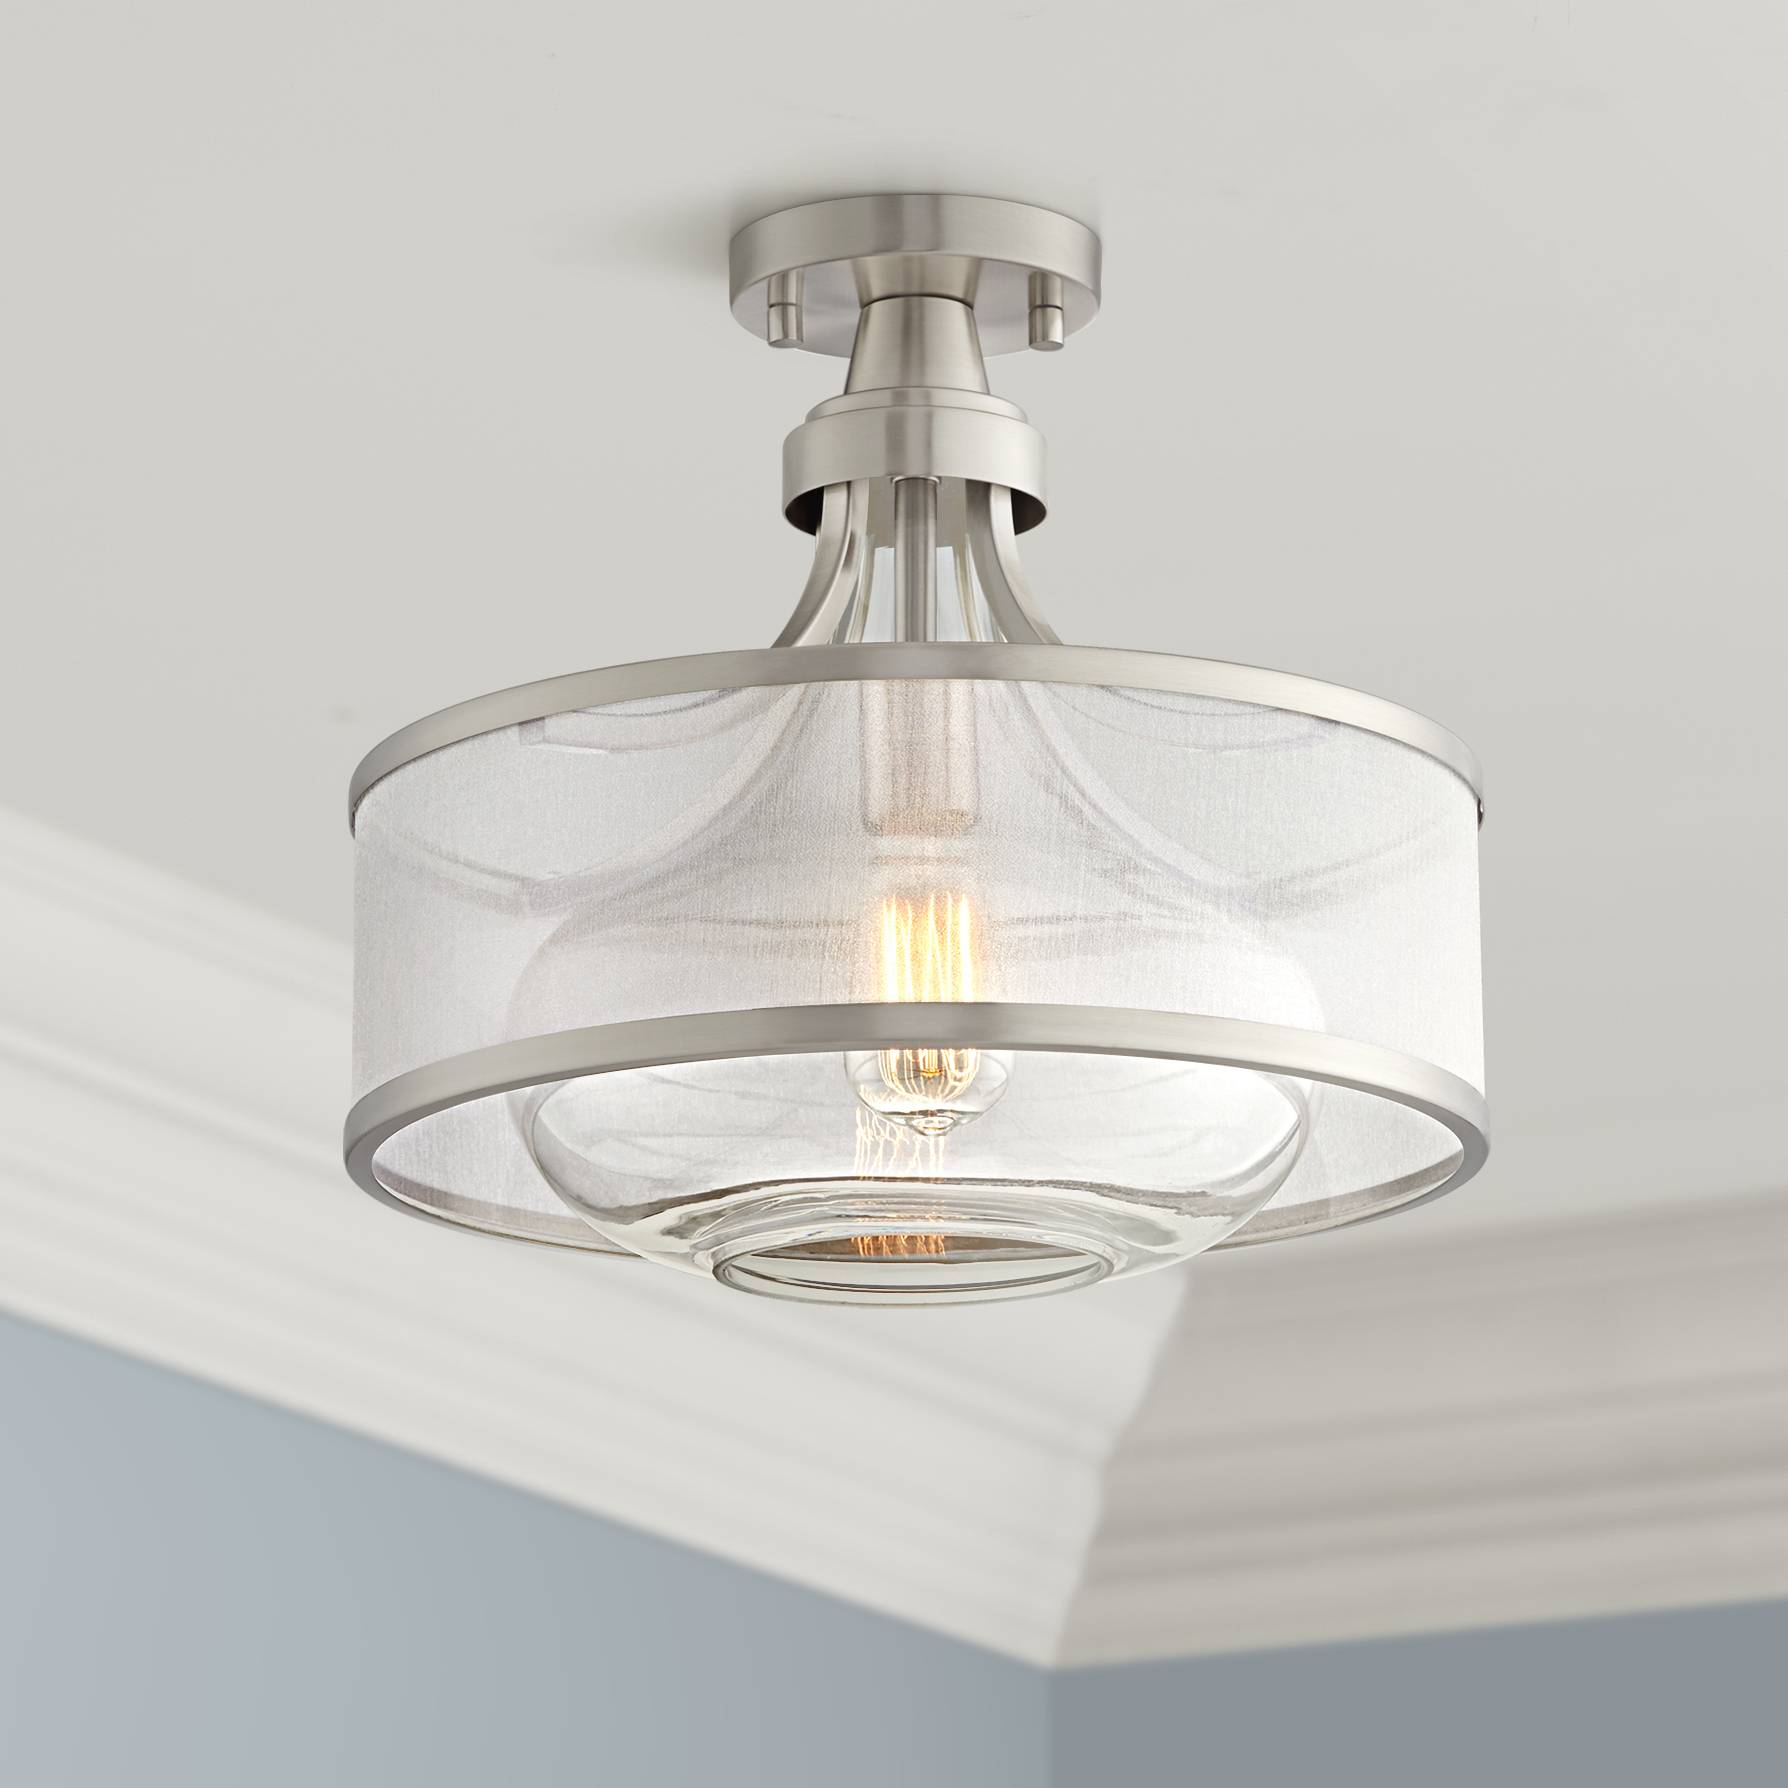 Details About Modern Ceiling Light Semi Flush Mount Fixture Nickel 15 Double Shade Bedroom